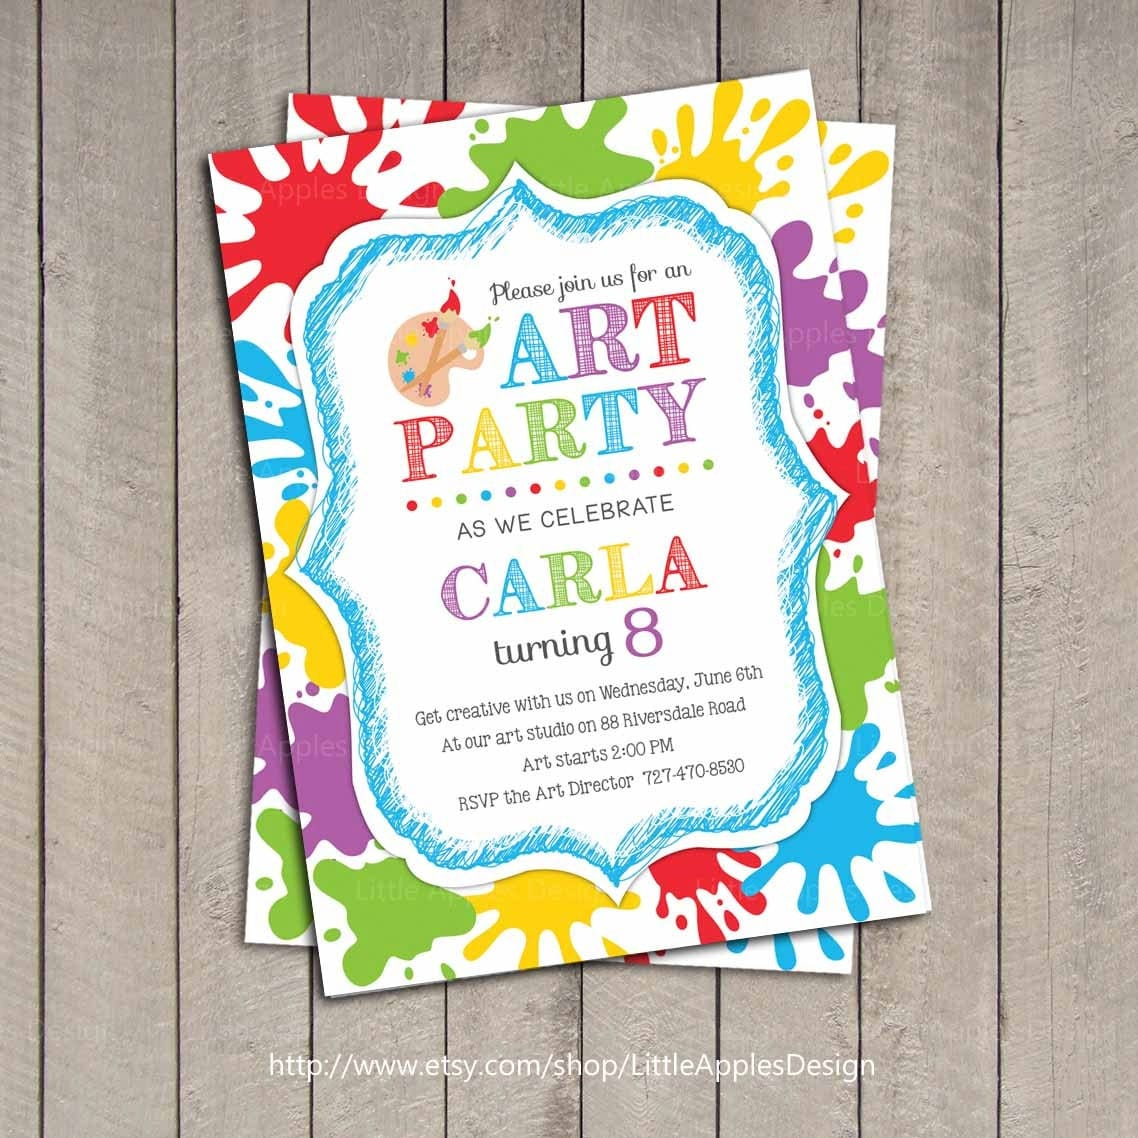 This is an image of Trust Free Printable Paint Party Invitations